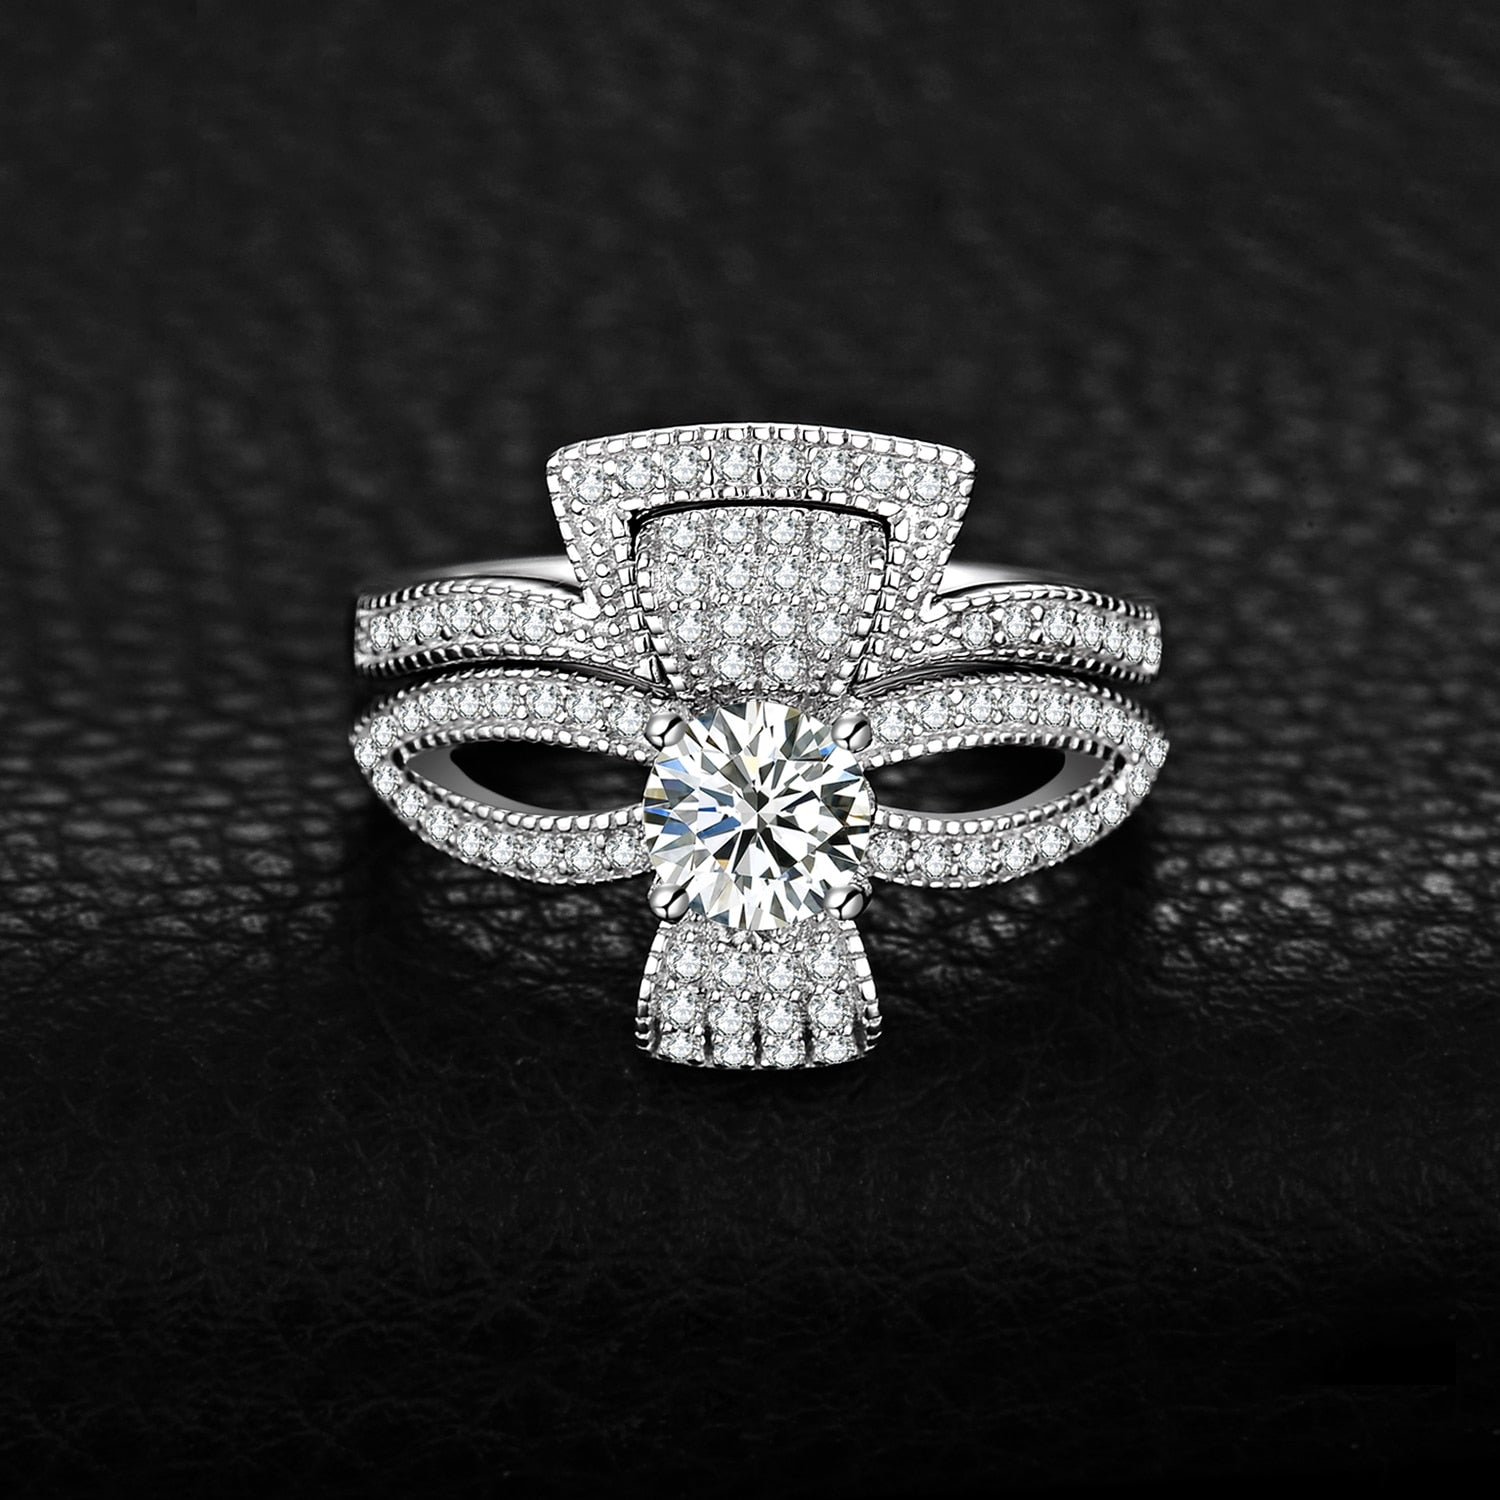 Cubic Zirconia Flora Ribbon Bowknot Split Shank Engagement Ring Sets - BEAUVAN